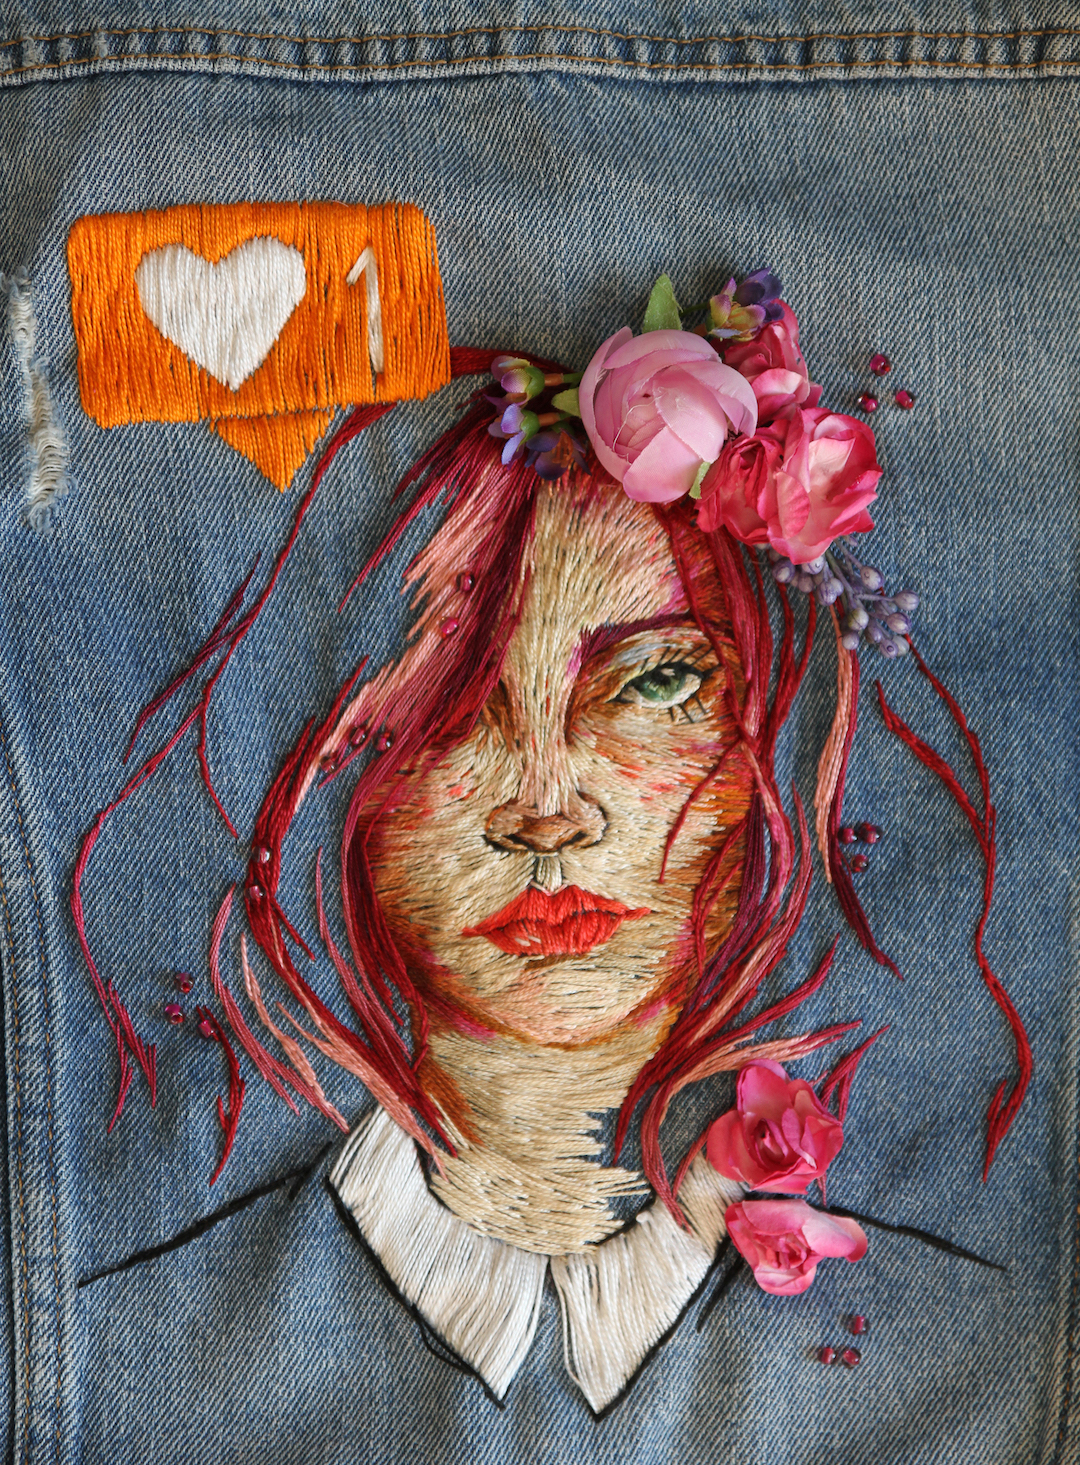 Denim Jacket Embroidery by Ezgi Pamir